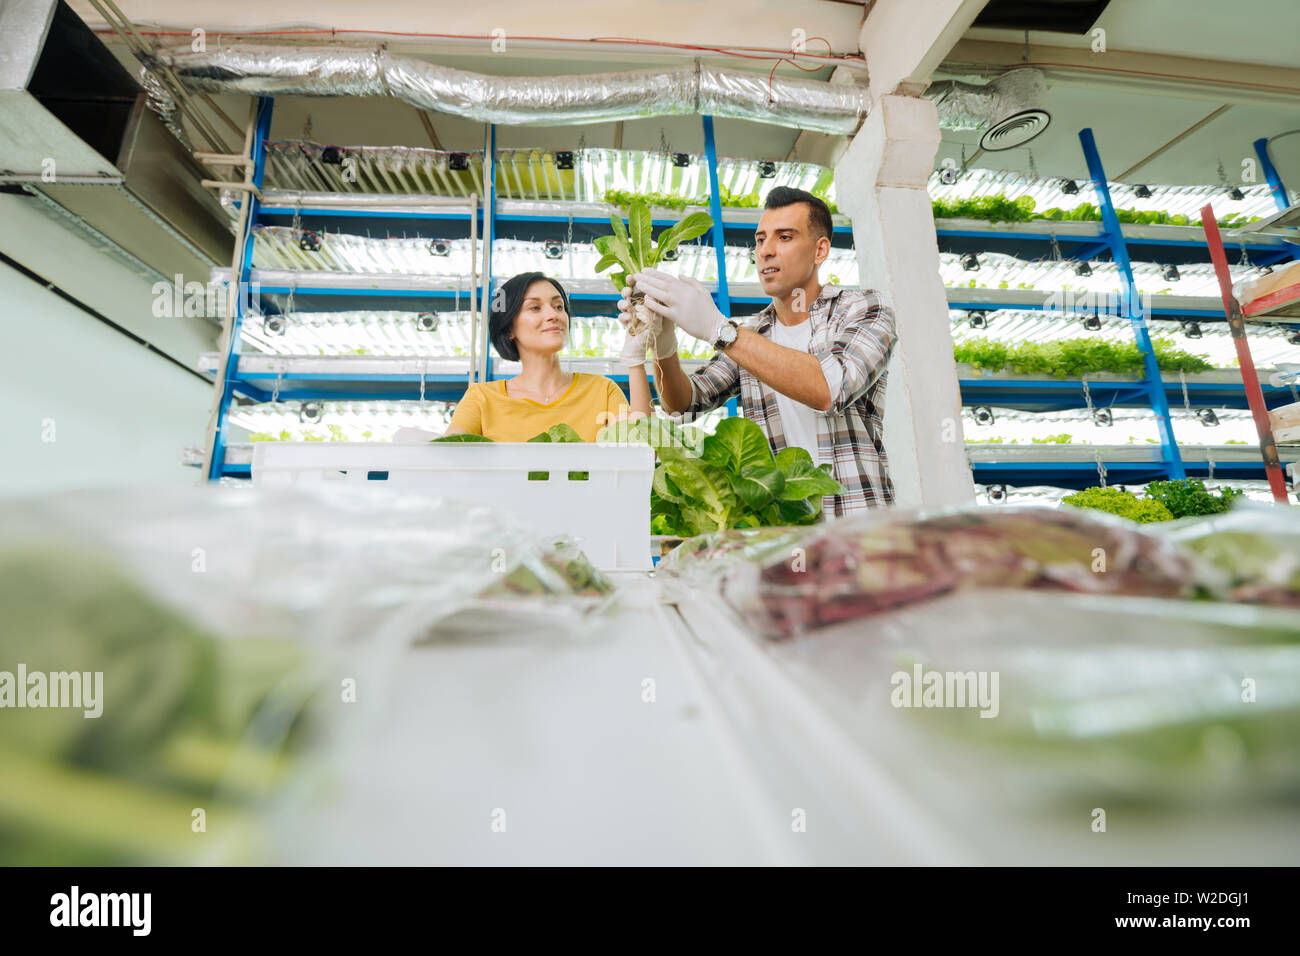 Husband and wife planting greens in greenhouse at the weekend Stock Photo